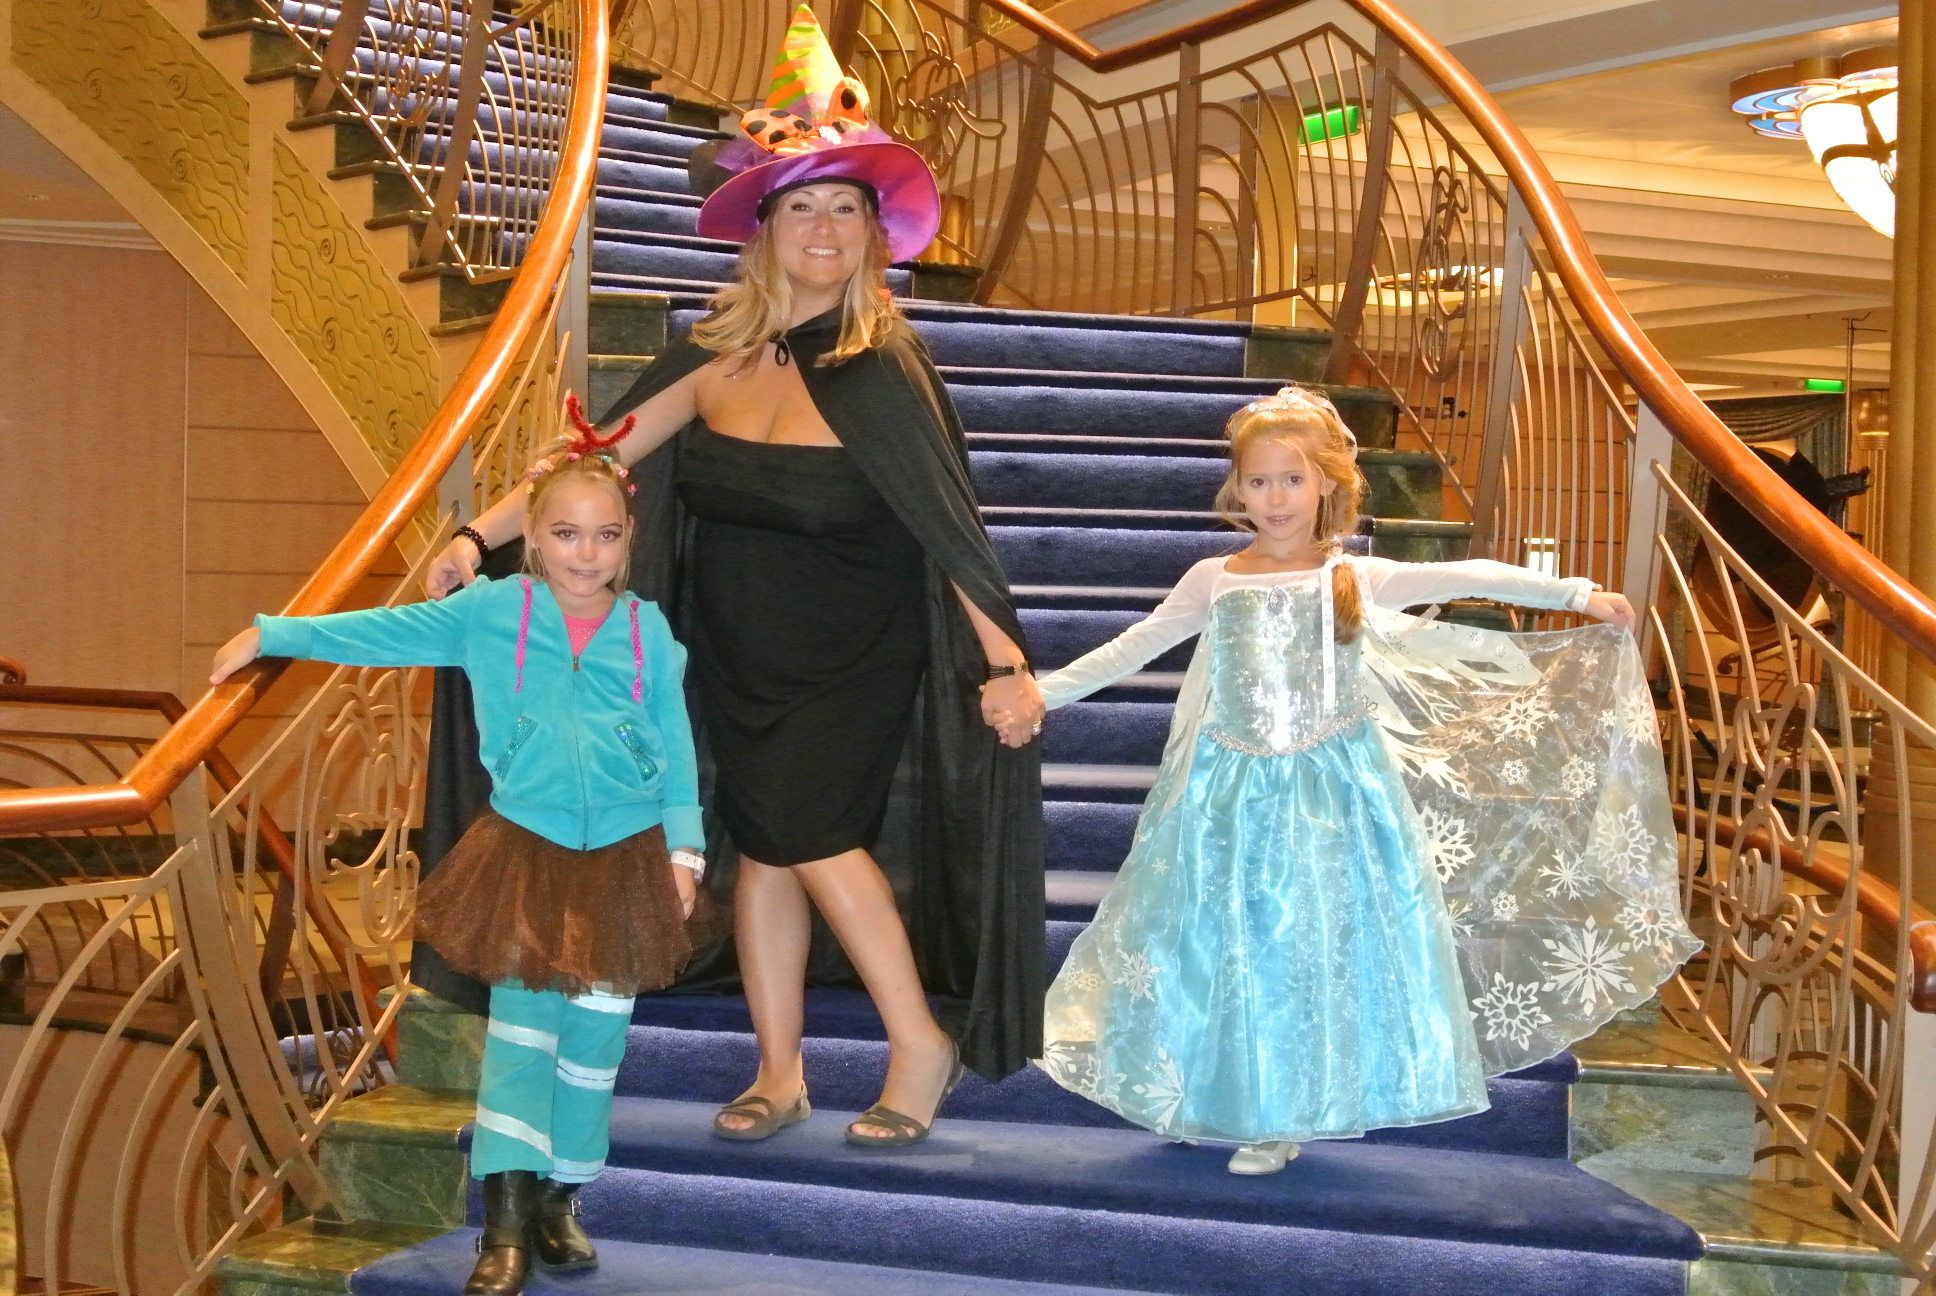 Time For Dress Up Halloween At High Seas Dreamisawishvacations Disney Disneycruiseline Cruise Disneyfantasy Disney Cruise Line Disney Fantasy Dress Up